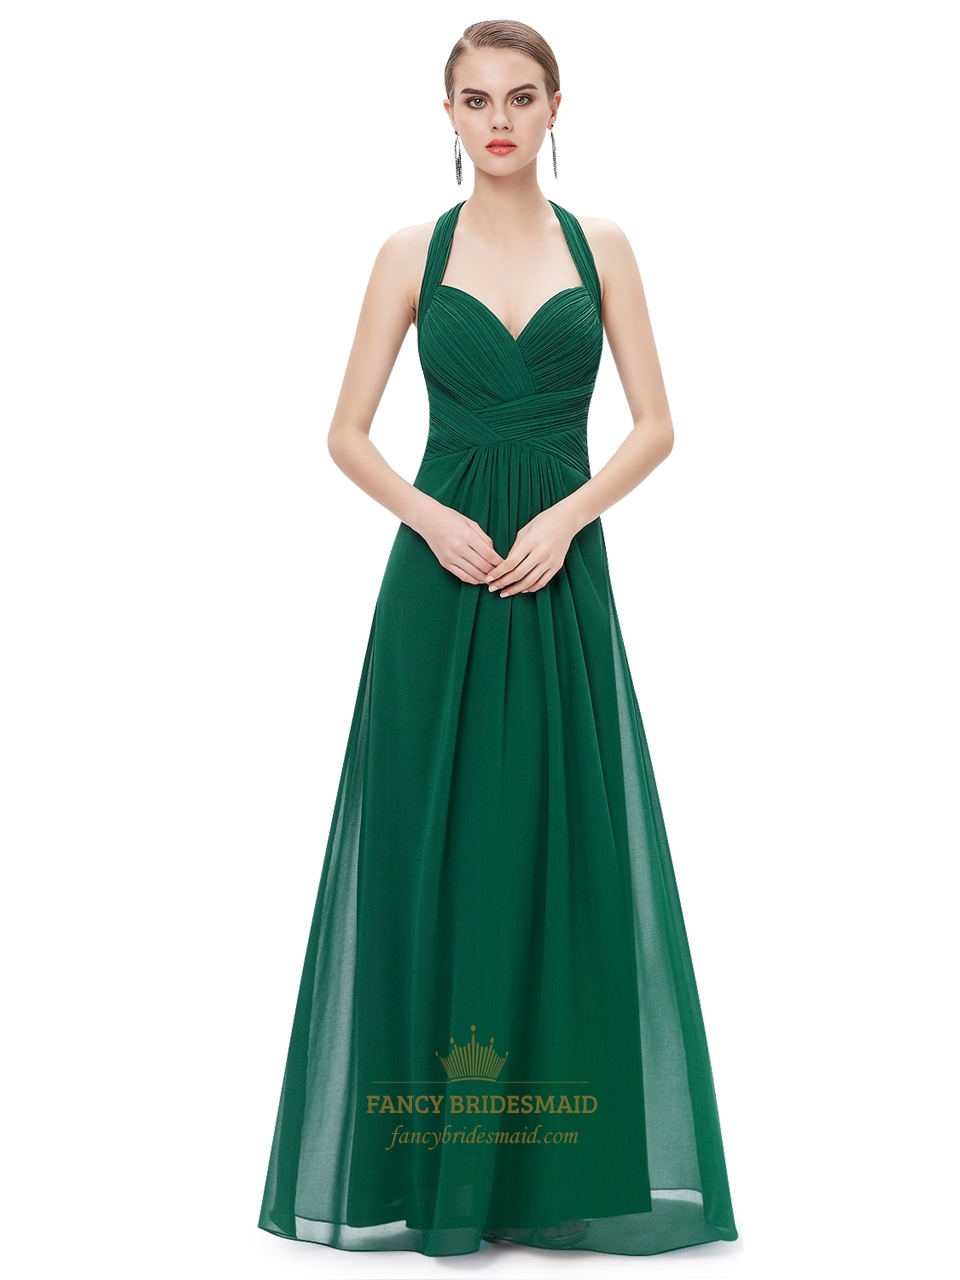 Emerald green chiffon halter neck bridesmaid dresses with ruching emerald green chiffon halter neck bridesmaid dresses with ruching ombrellifo Choice Image